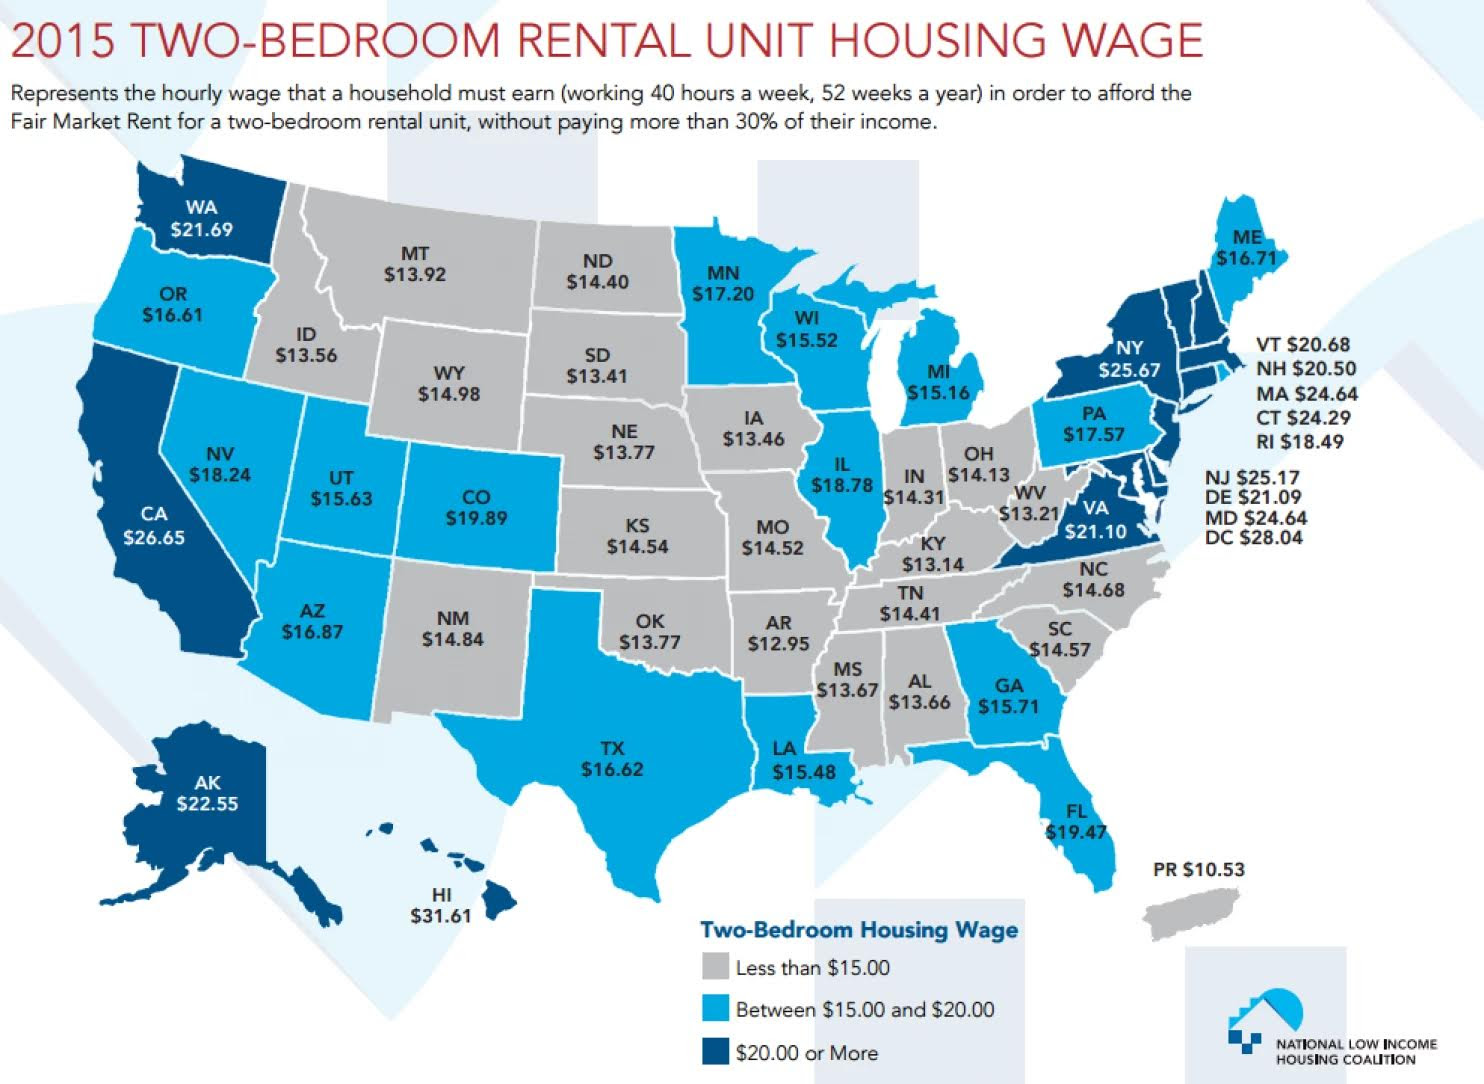 http://www.ritholtz.com/blog/2015/06/2015-two-bedroom-rental-unit-housing-wage/